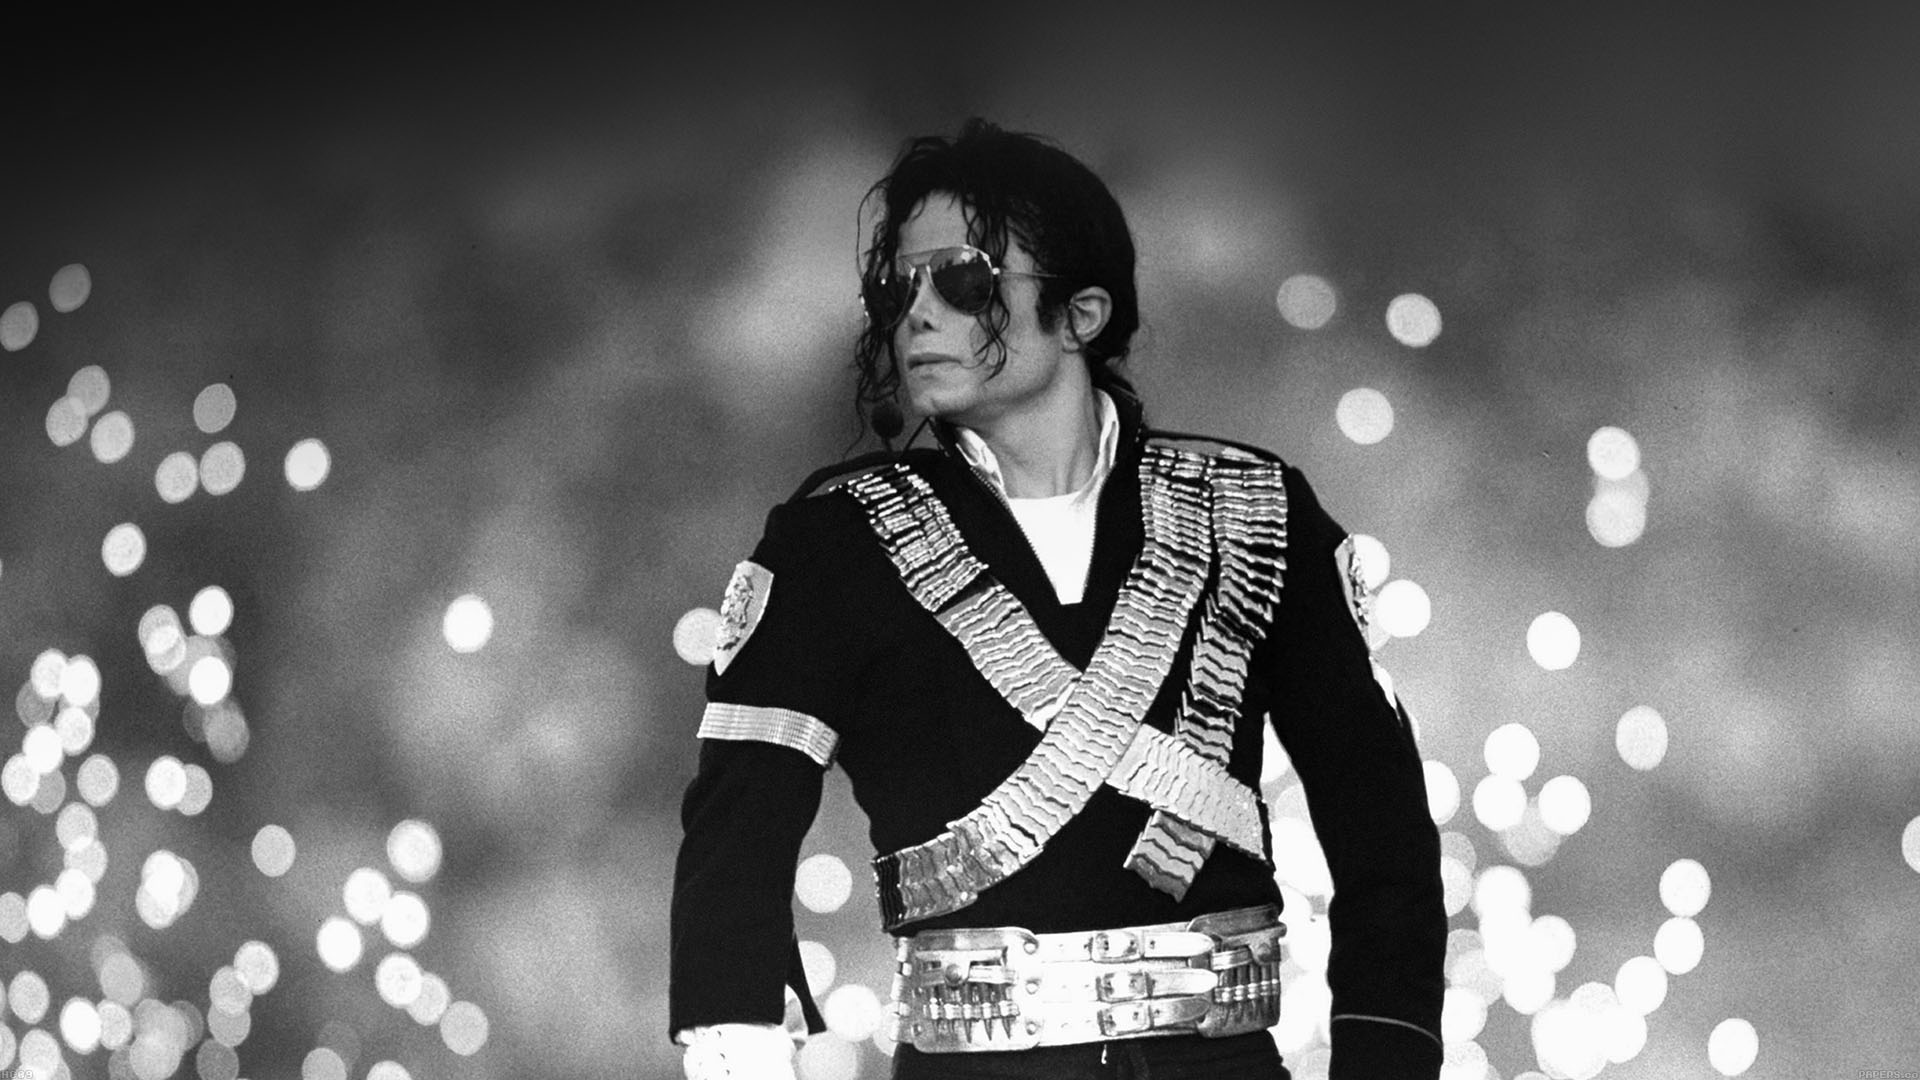 Hc09 Michael Jackson Bw Concert King Of Pop Papers Co